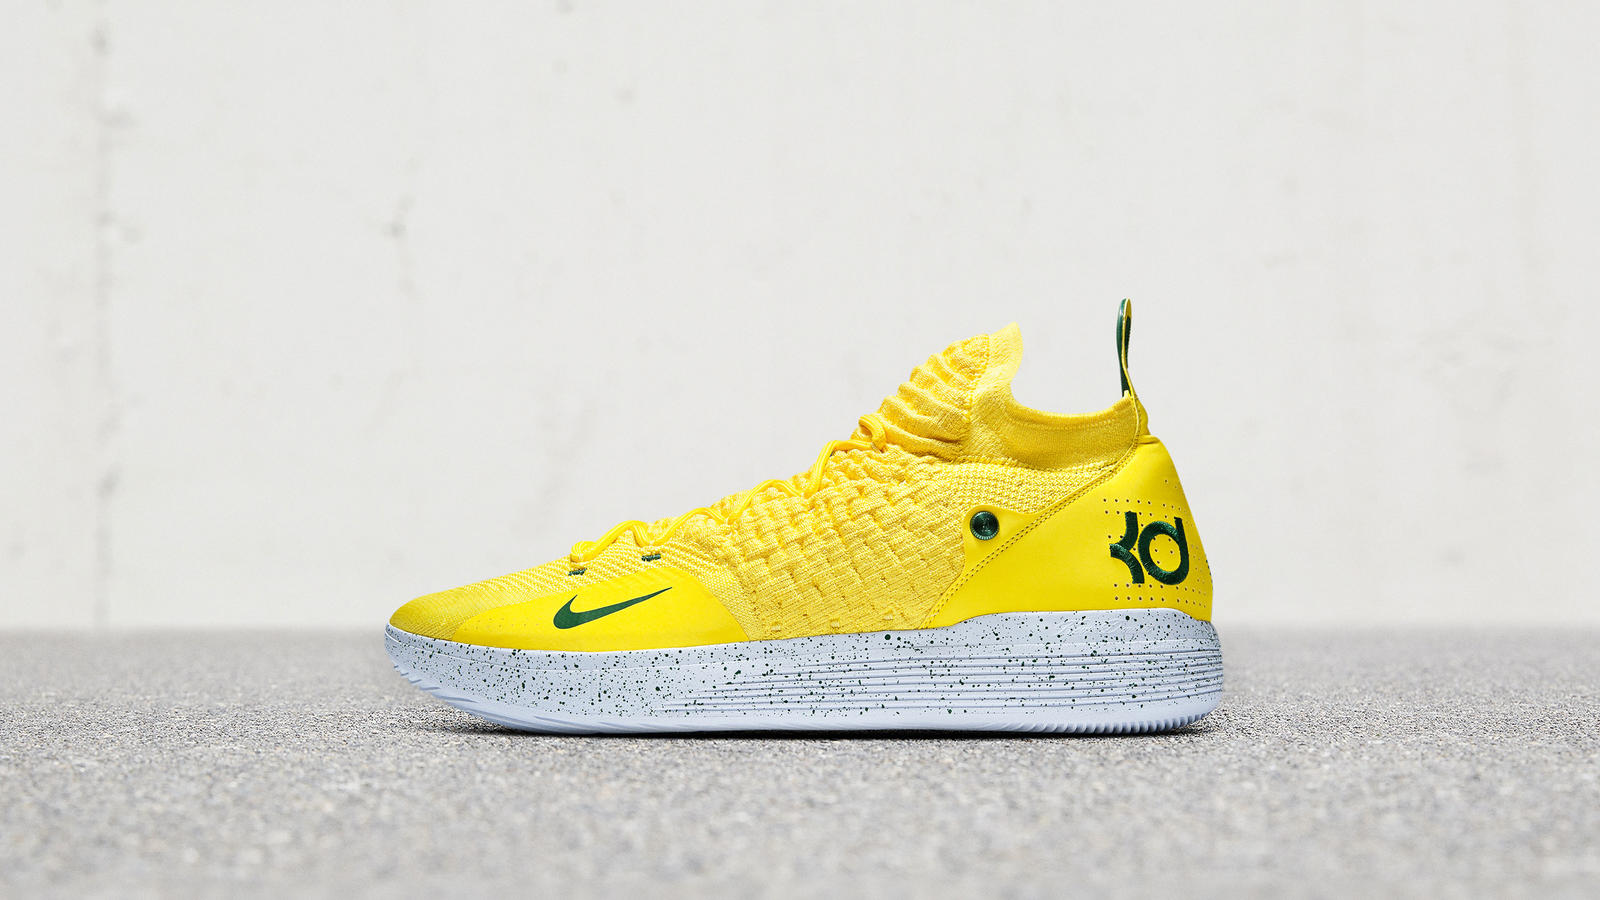 Featuredfootwear kd11 seattlepe 476 hd 1600